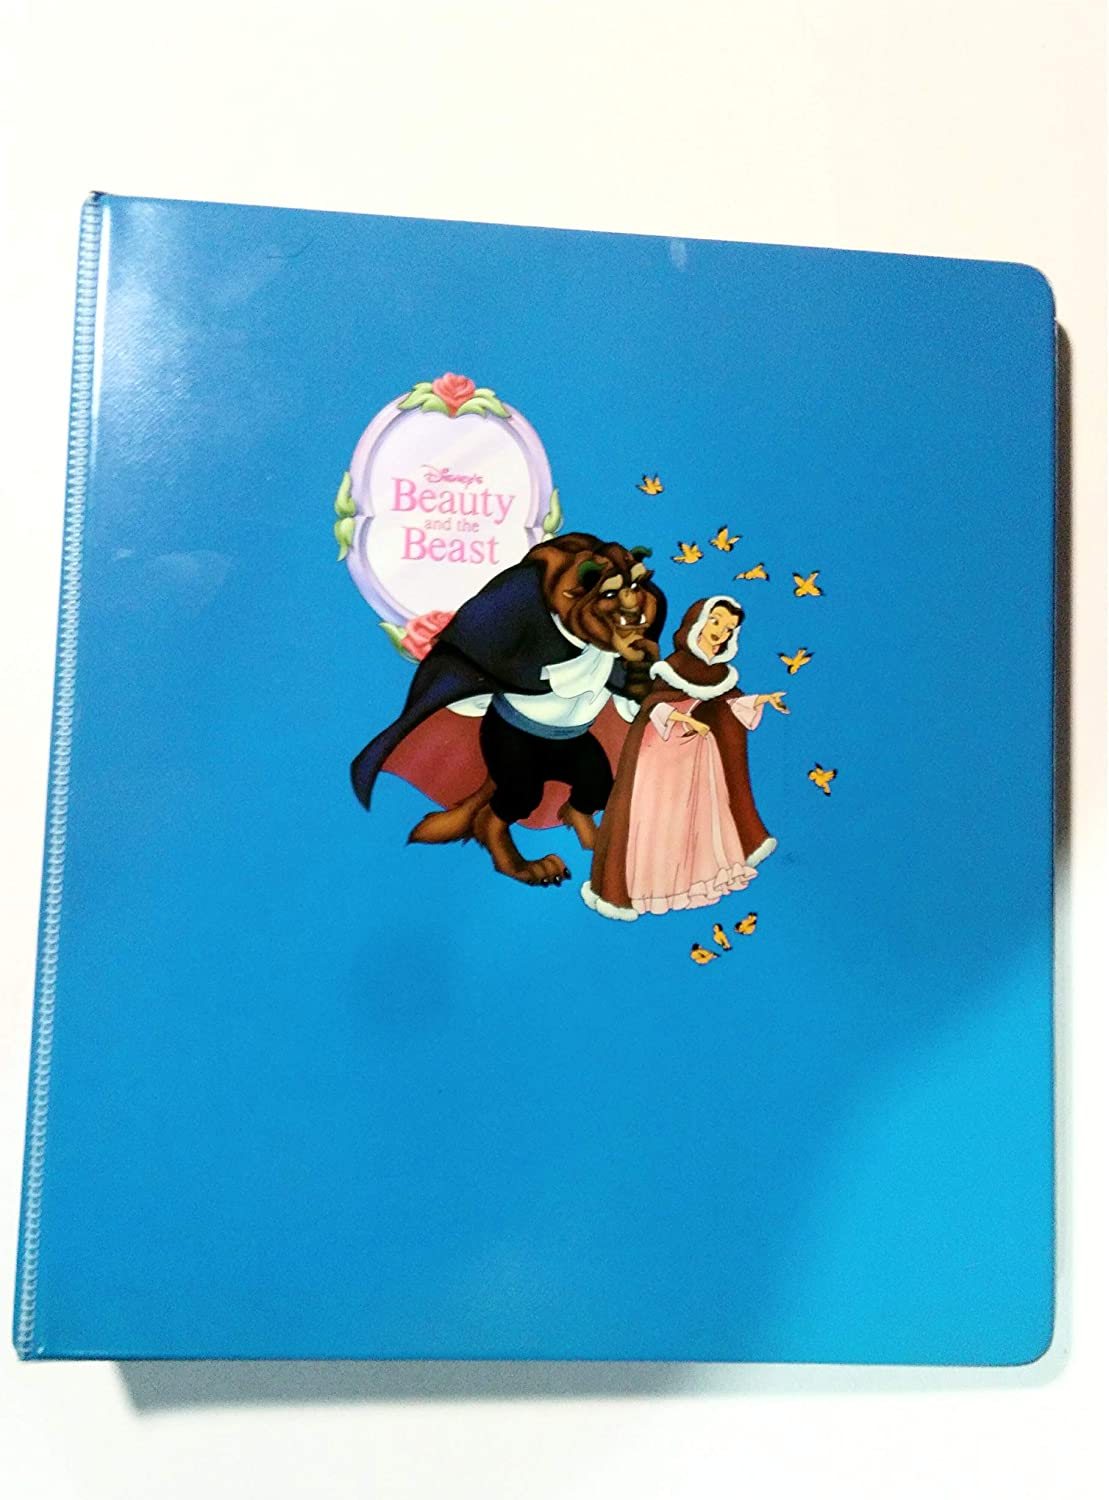 1992 Pro Set. Collectable Vintage Beauty and The Beast Trading Cards in Album